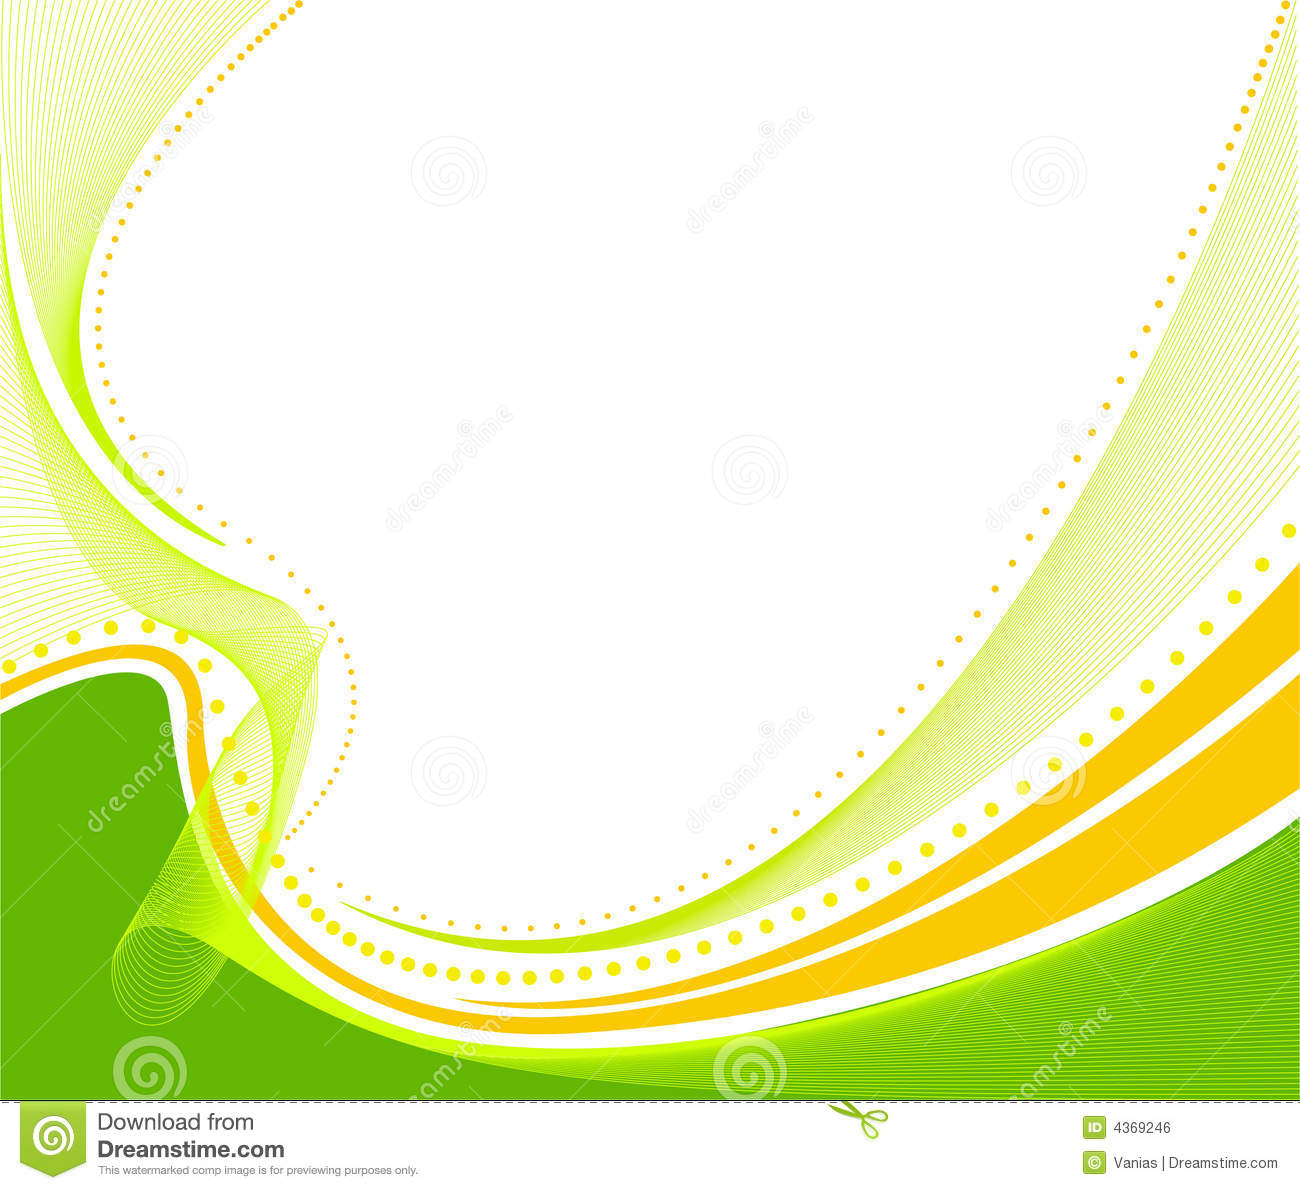 Nature Wall Murals Abstract Background Vector Royalty Free Stock Image